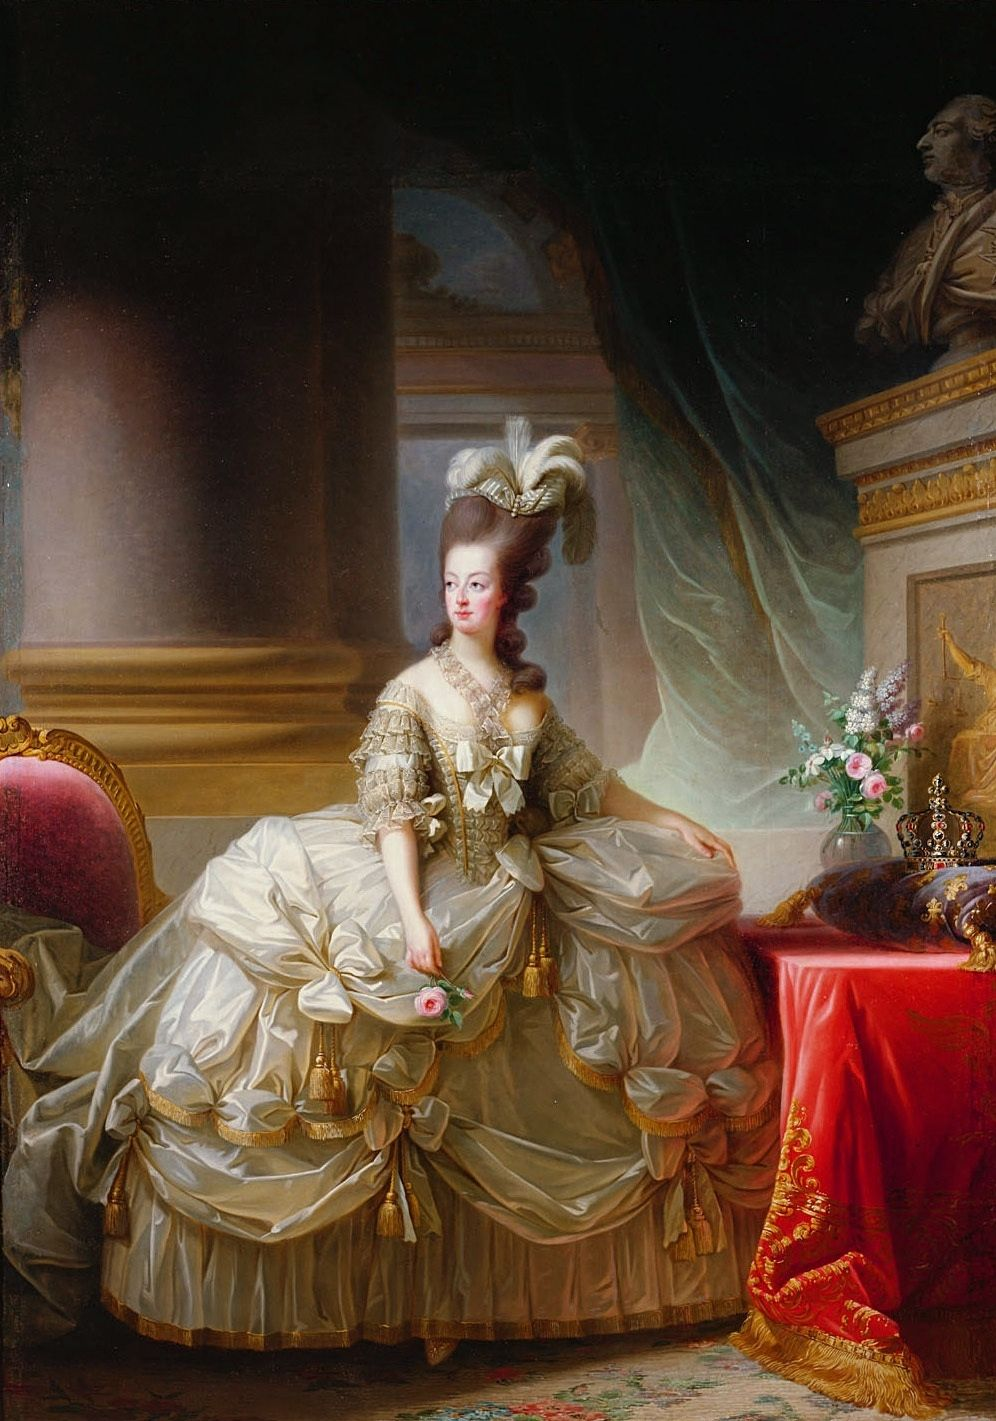 Marie Antoinette - Wikipedia. Many relatives in France in 1600s and 1700s.  Marie reigned in 1700s 9e65d3f7fae8